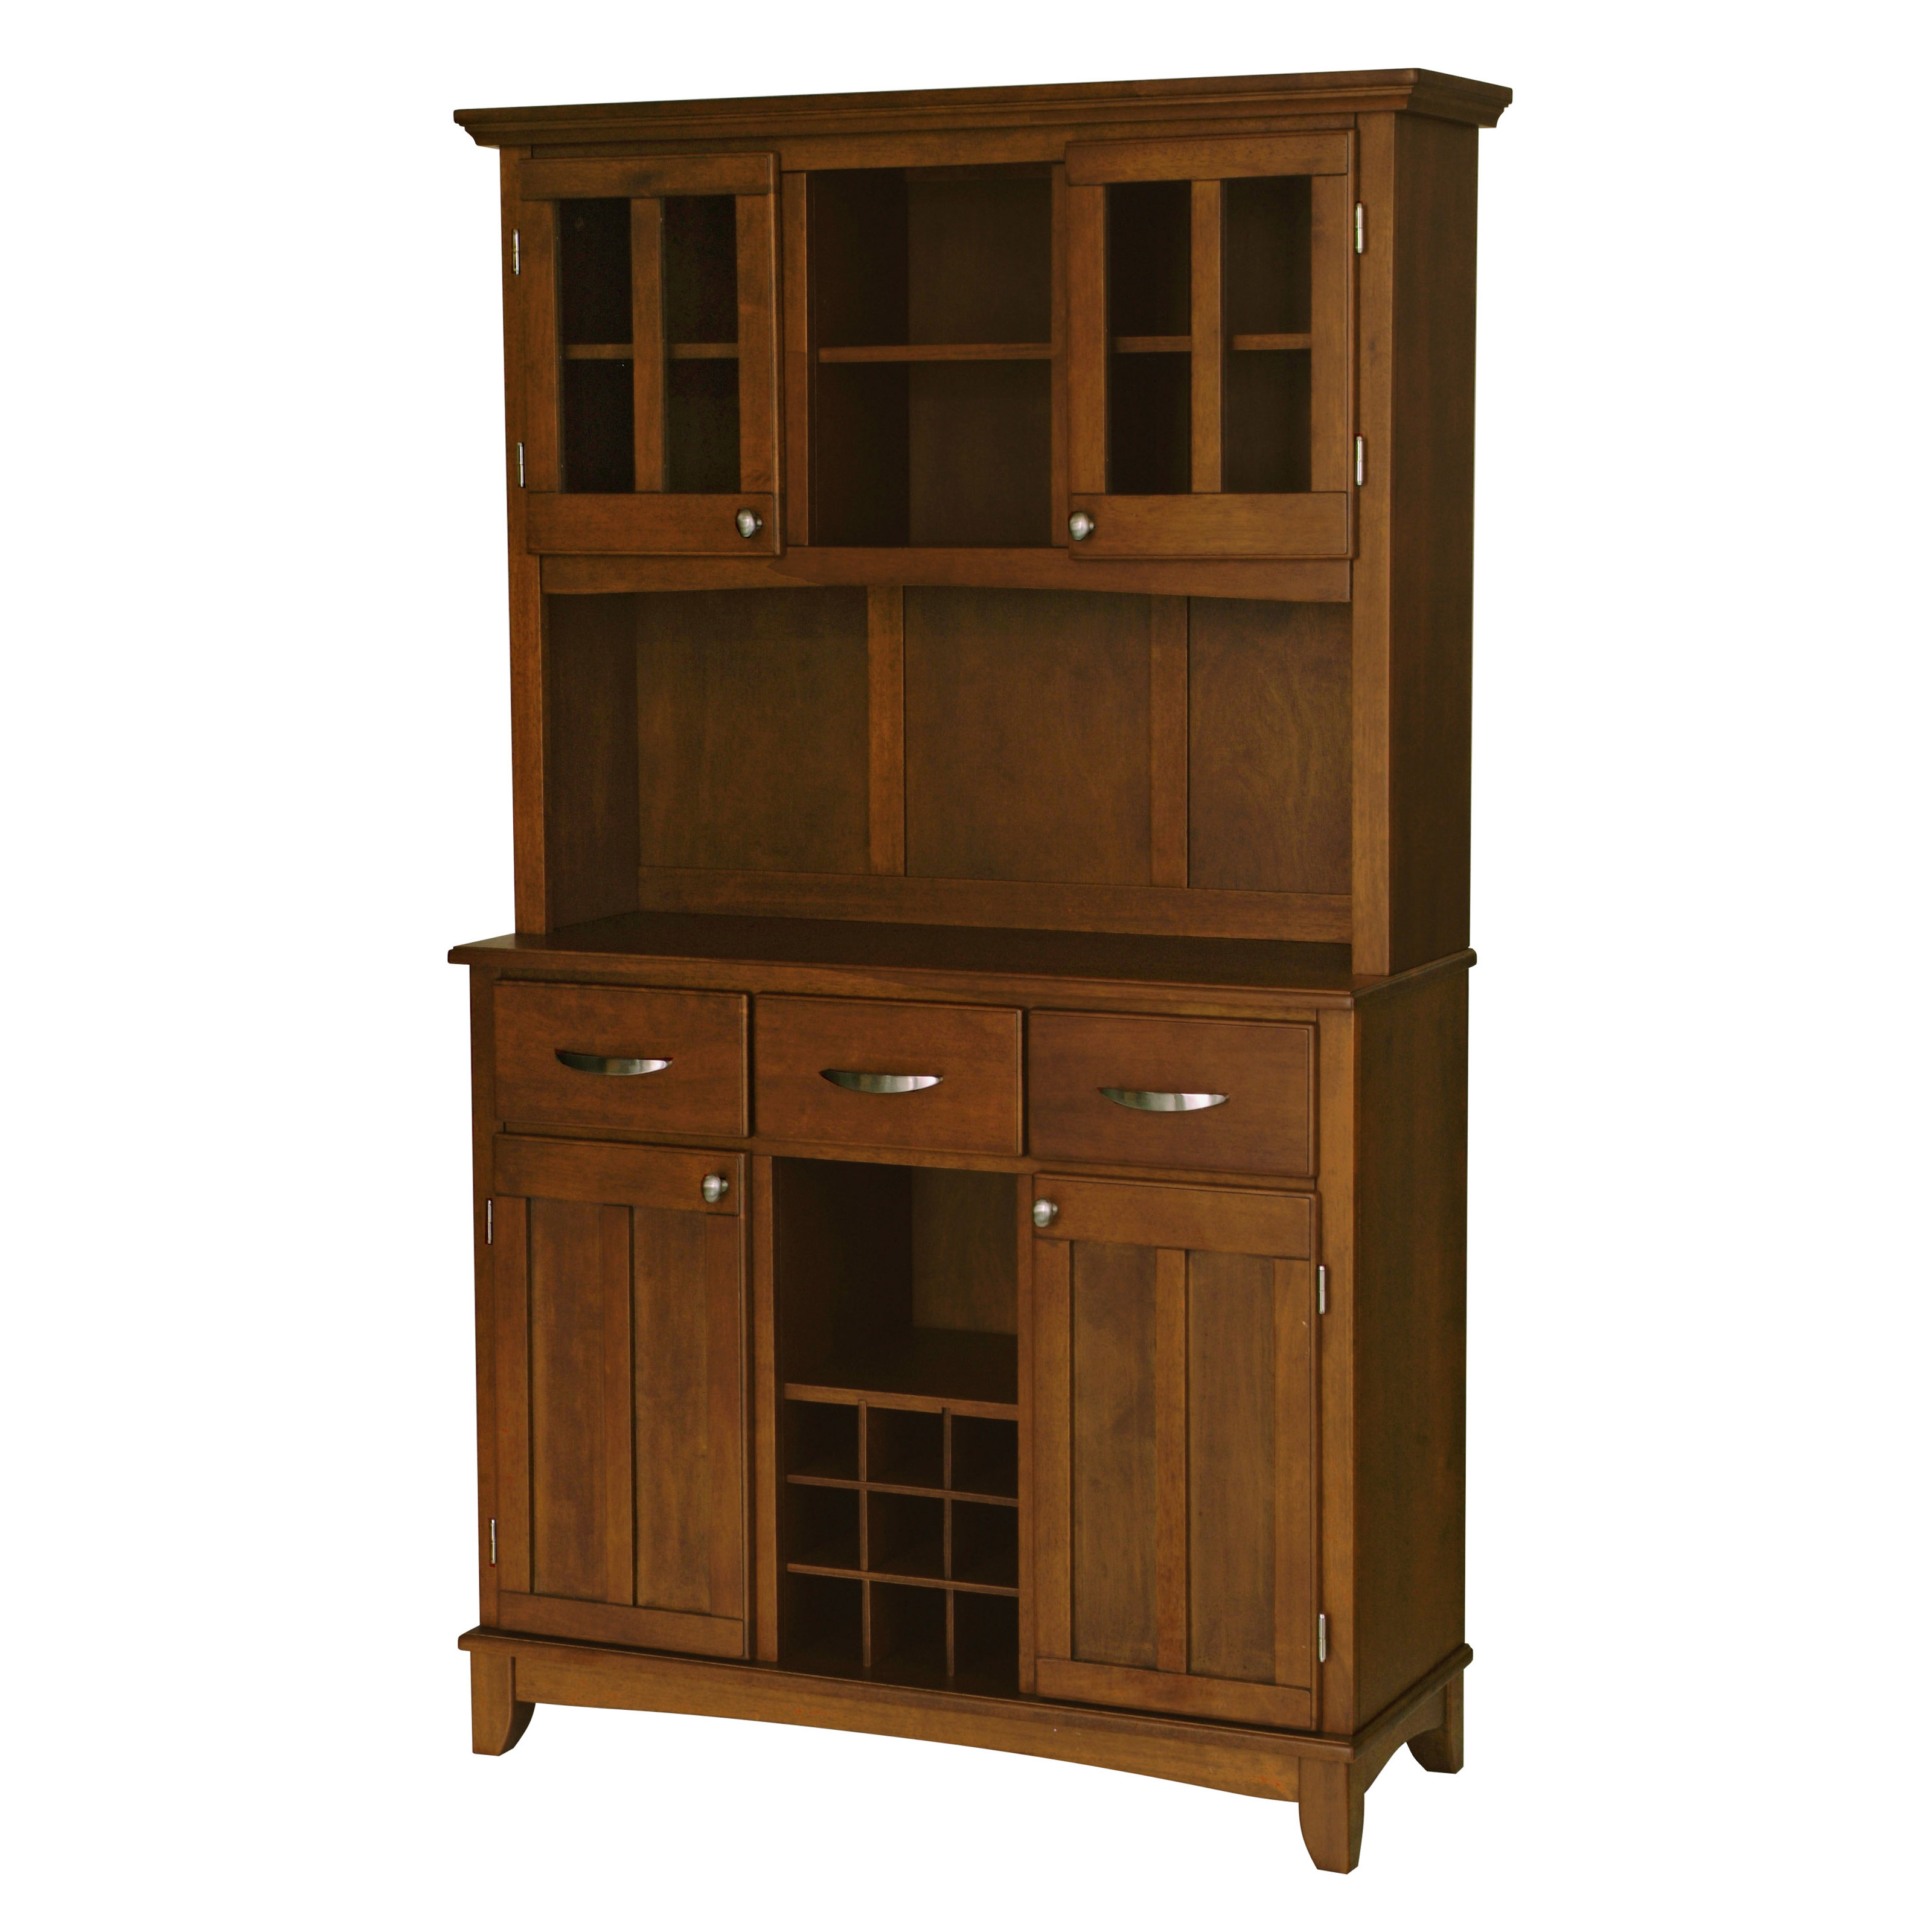 Beau Home Styles Large Wood Bakers Rack With Two Door Hutch